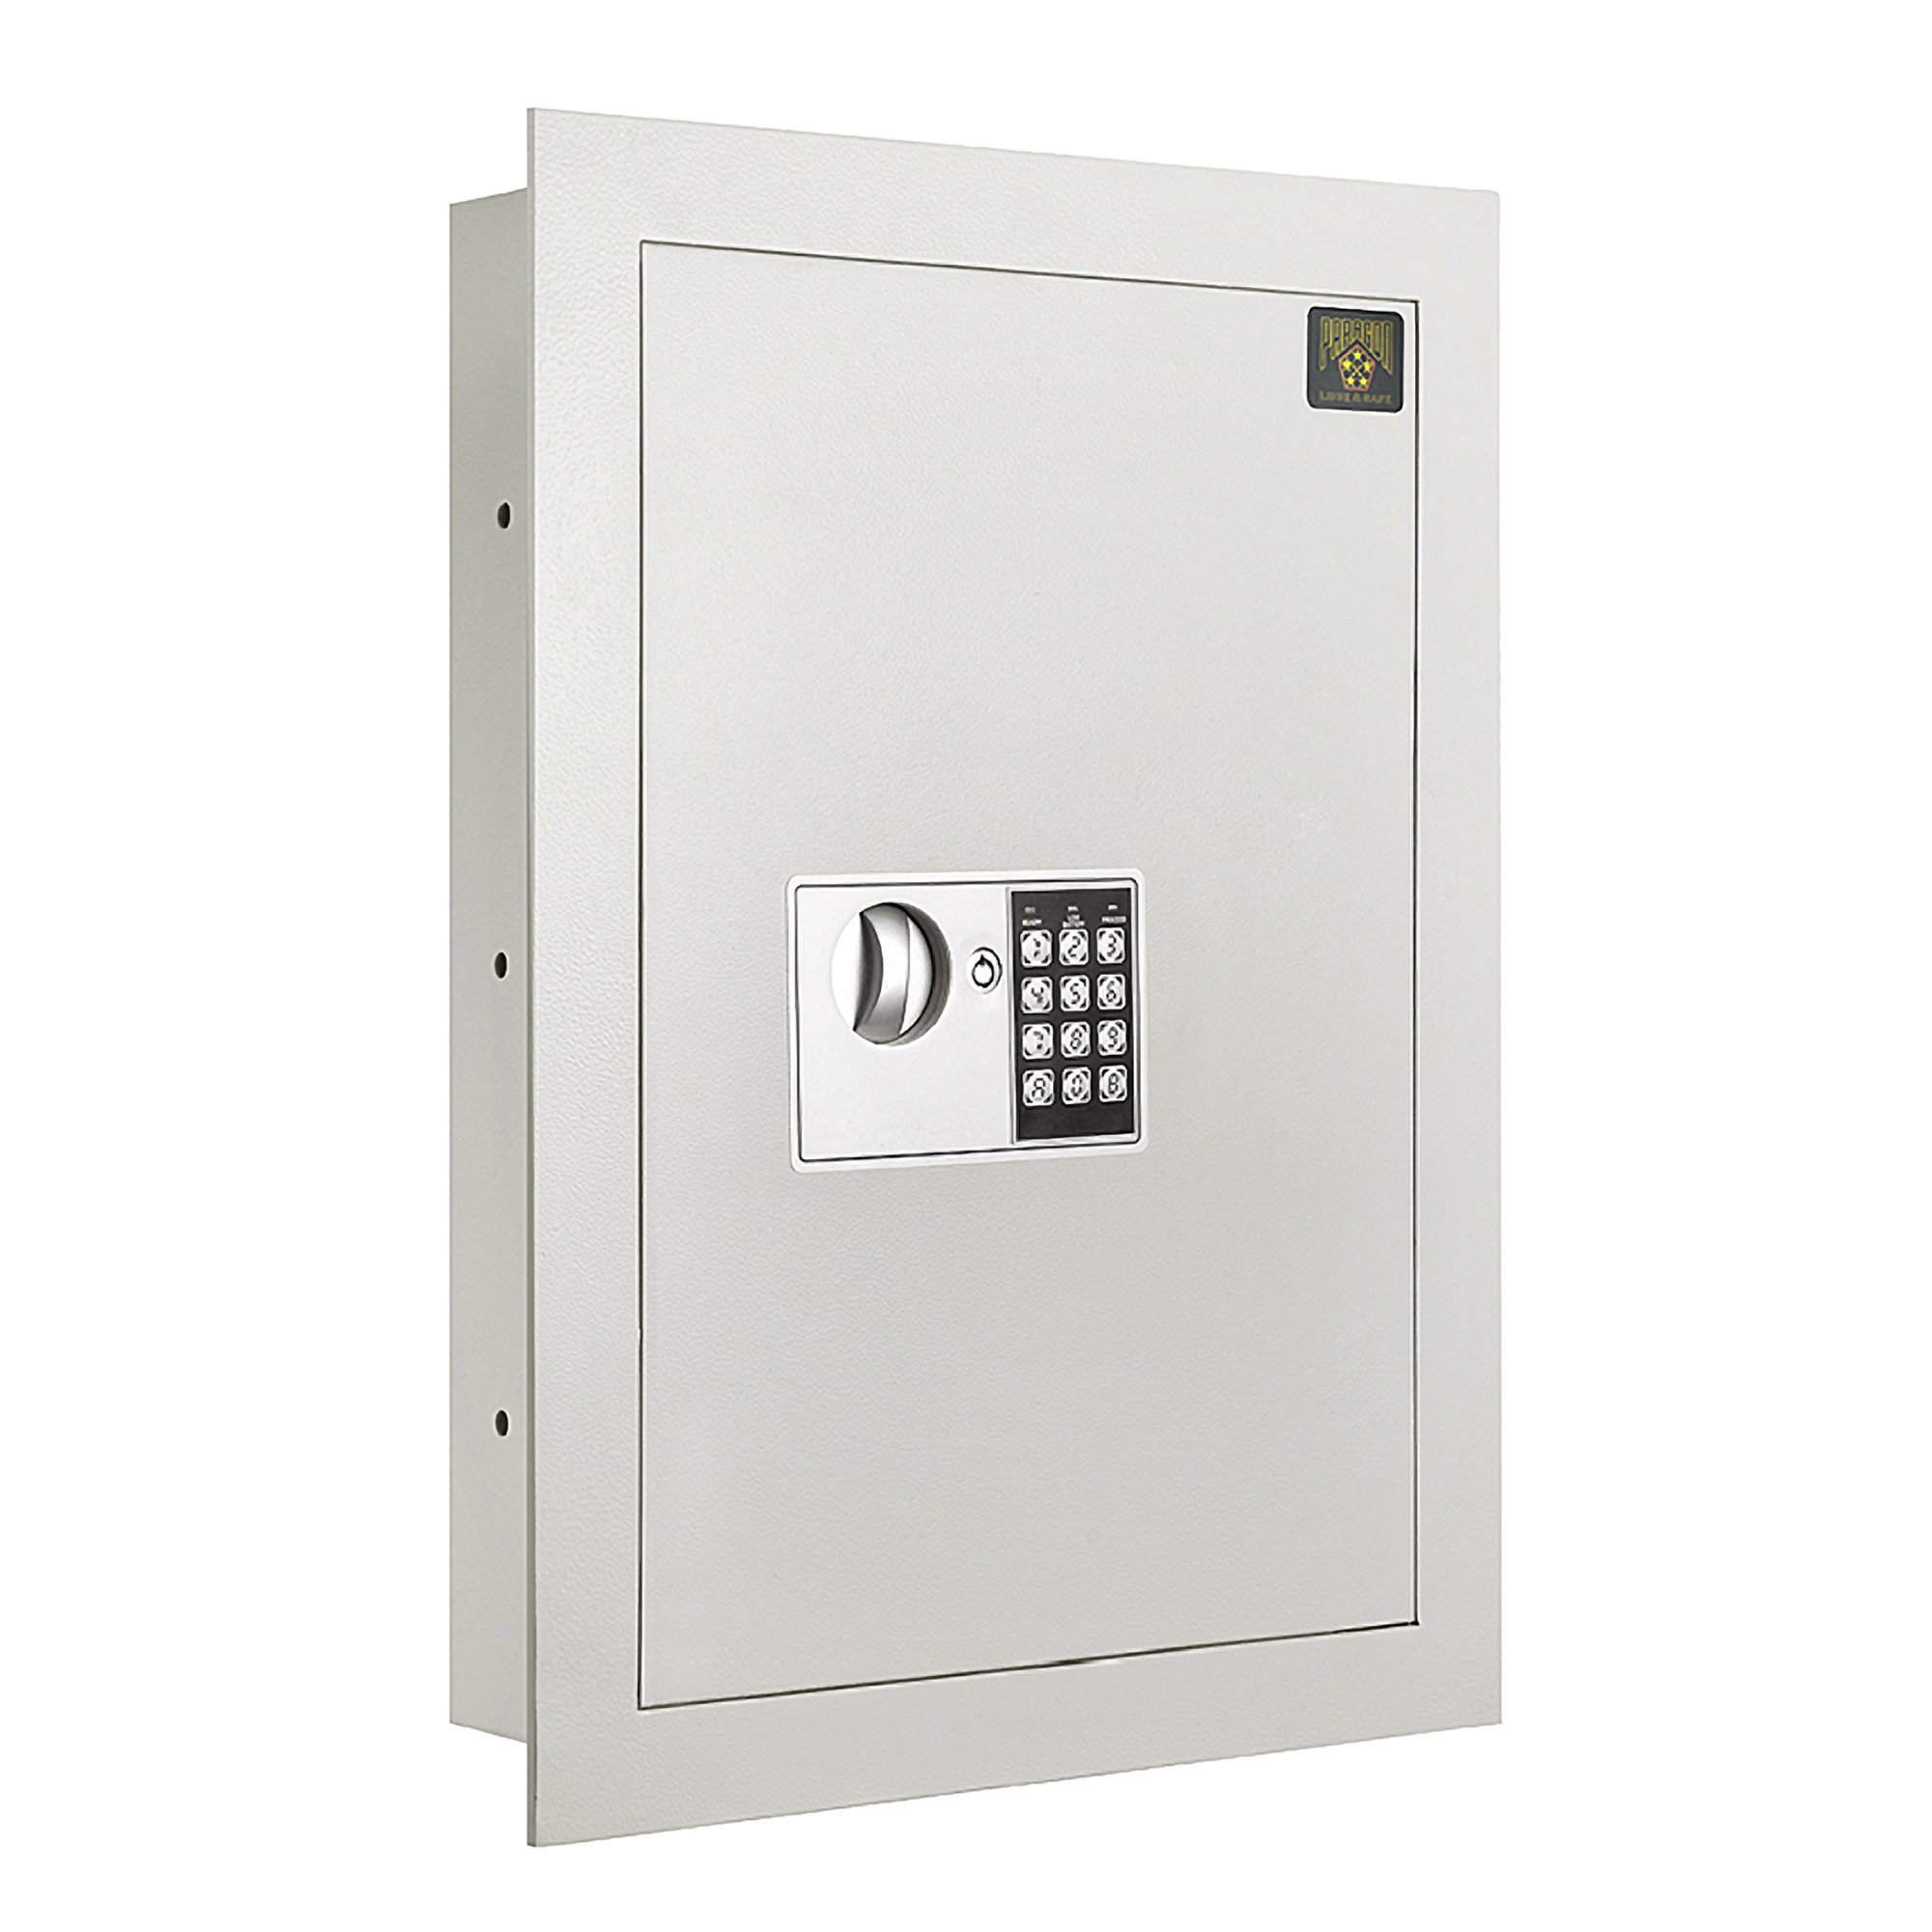 7700 Flat Electronic Wall Safe .83 CF for Large Jewelry Security-Paragon Lock & Safe by Paragon Lock and Safe